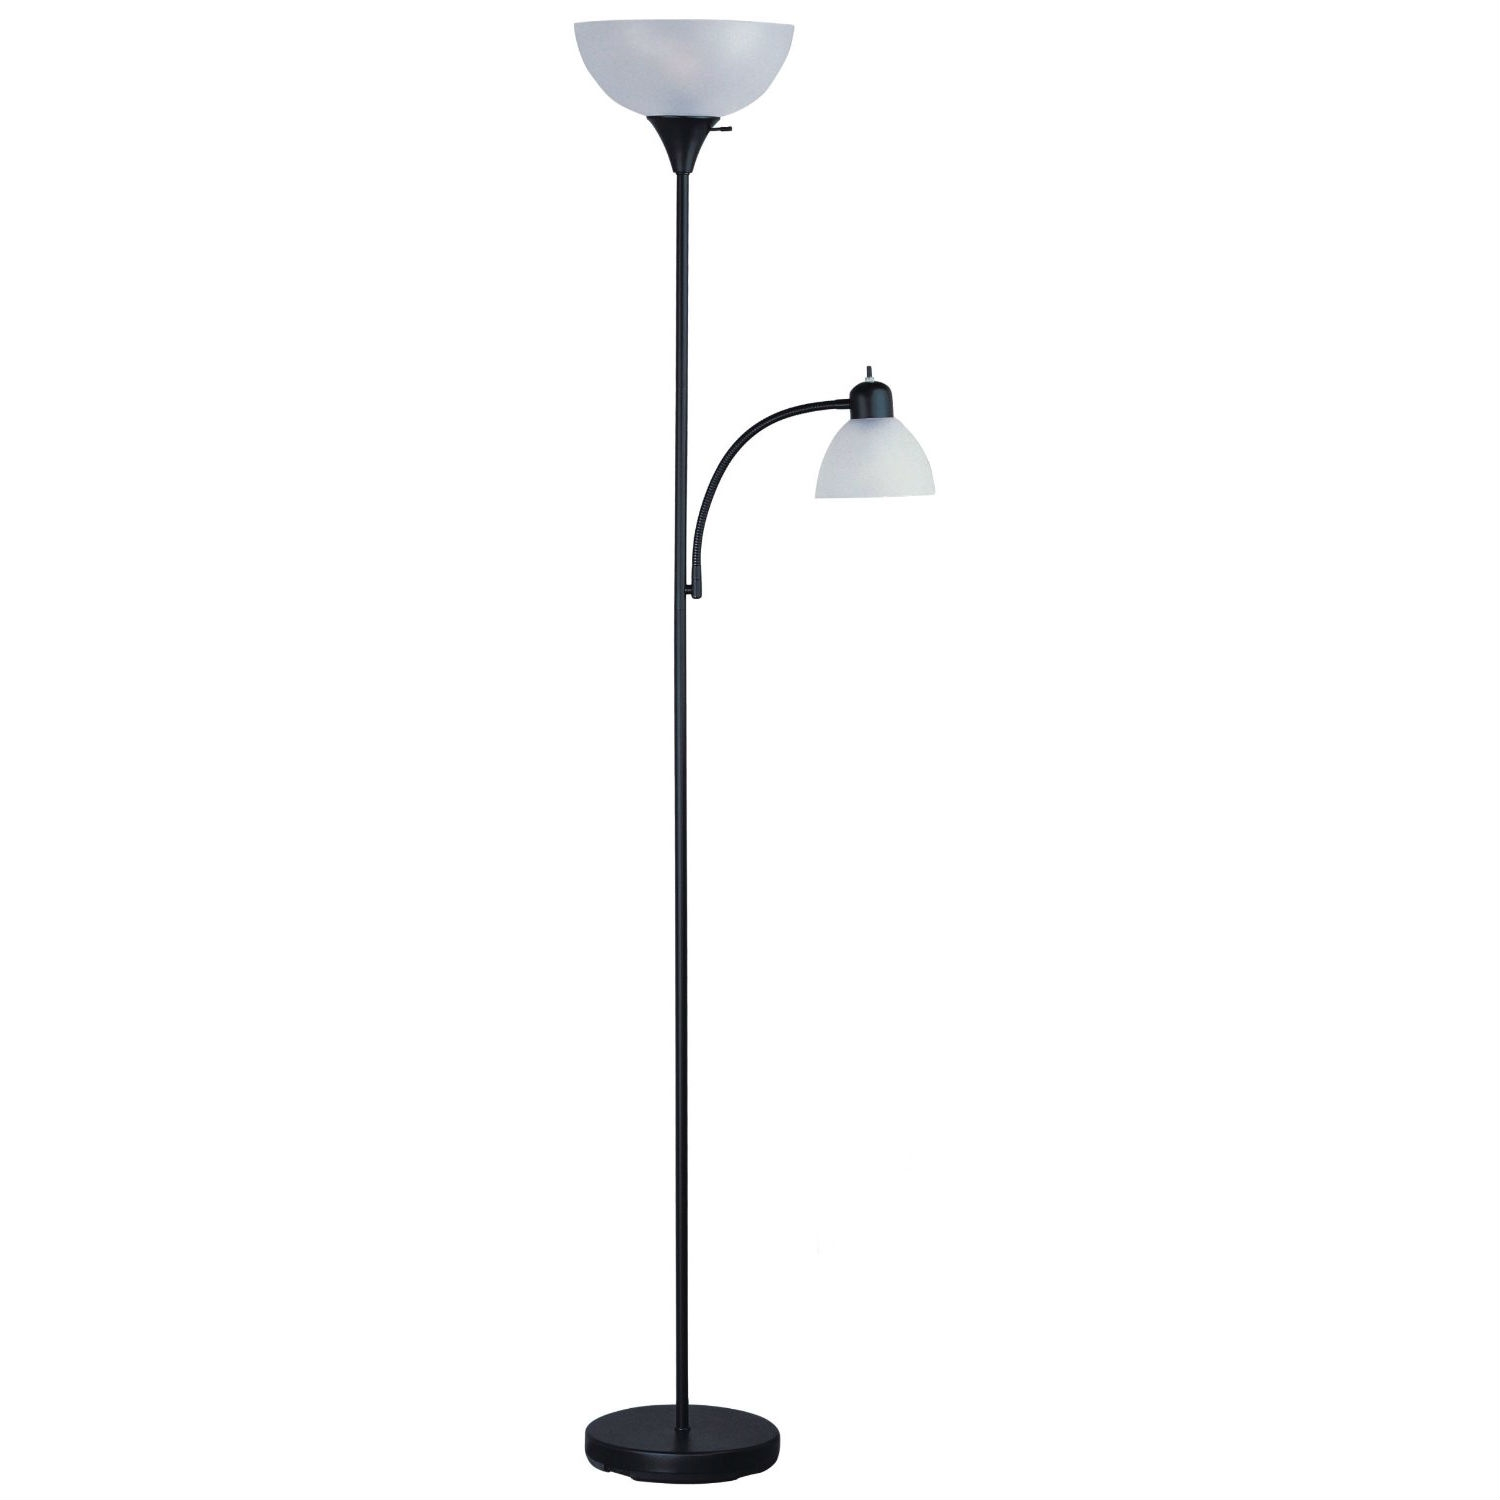 72 Inch Tall Black Floor Lamp With